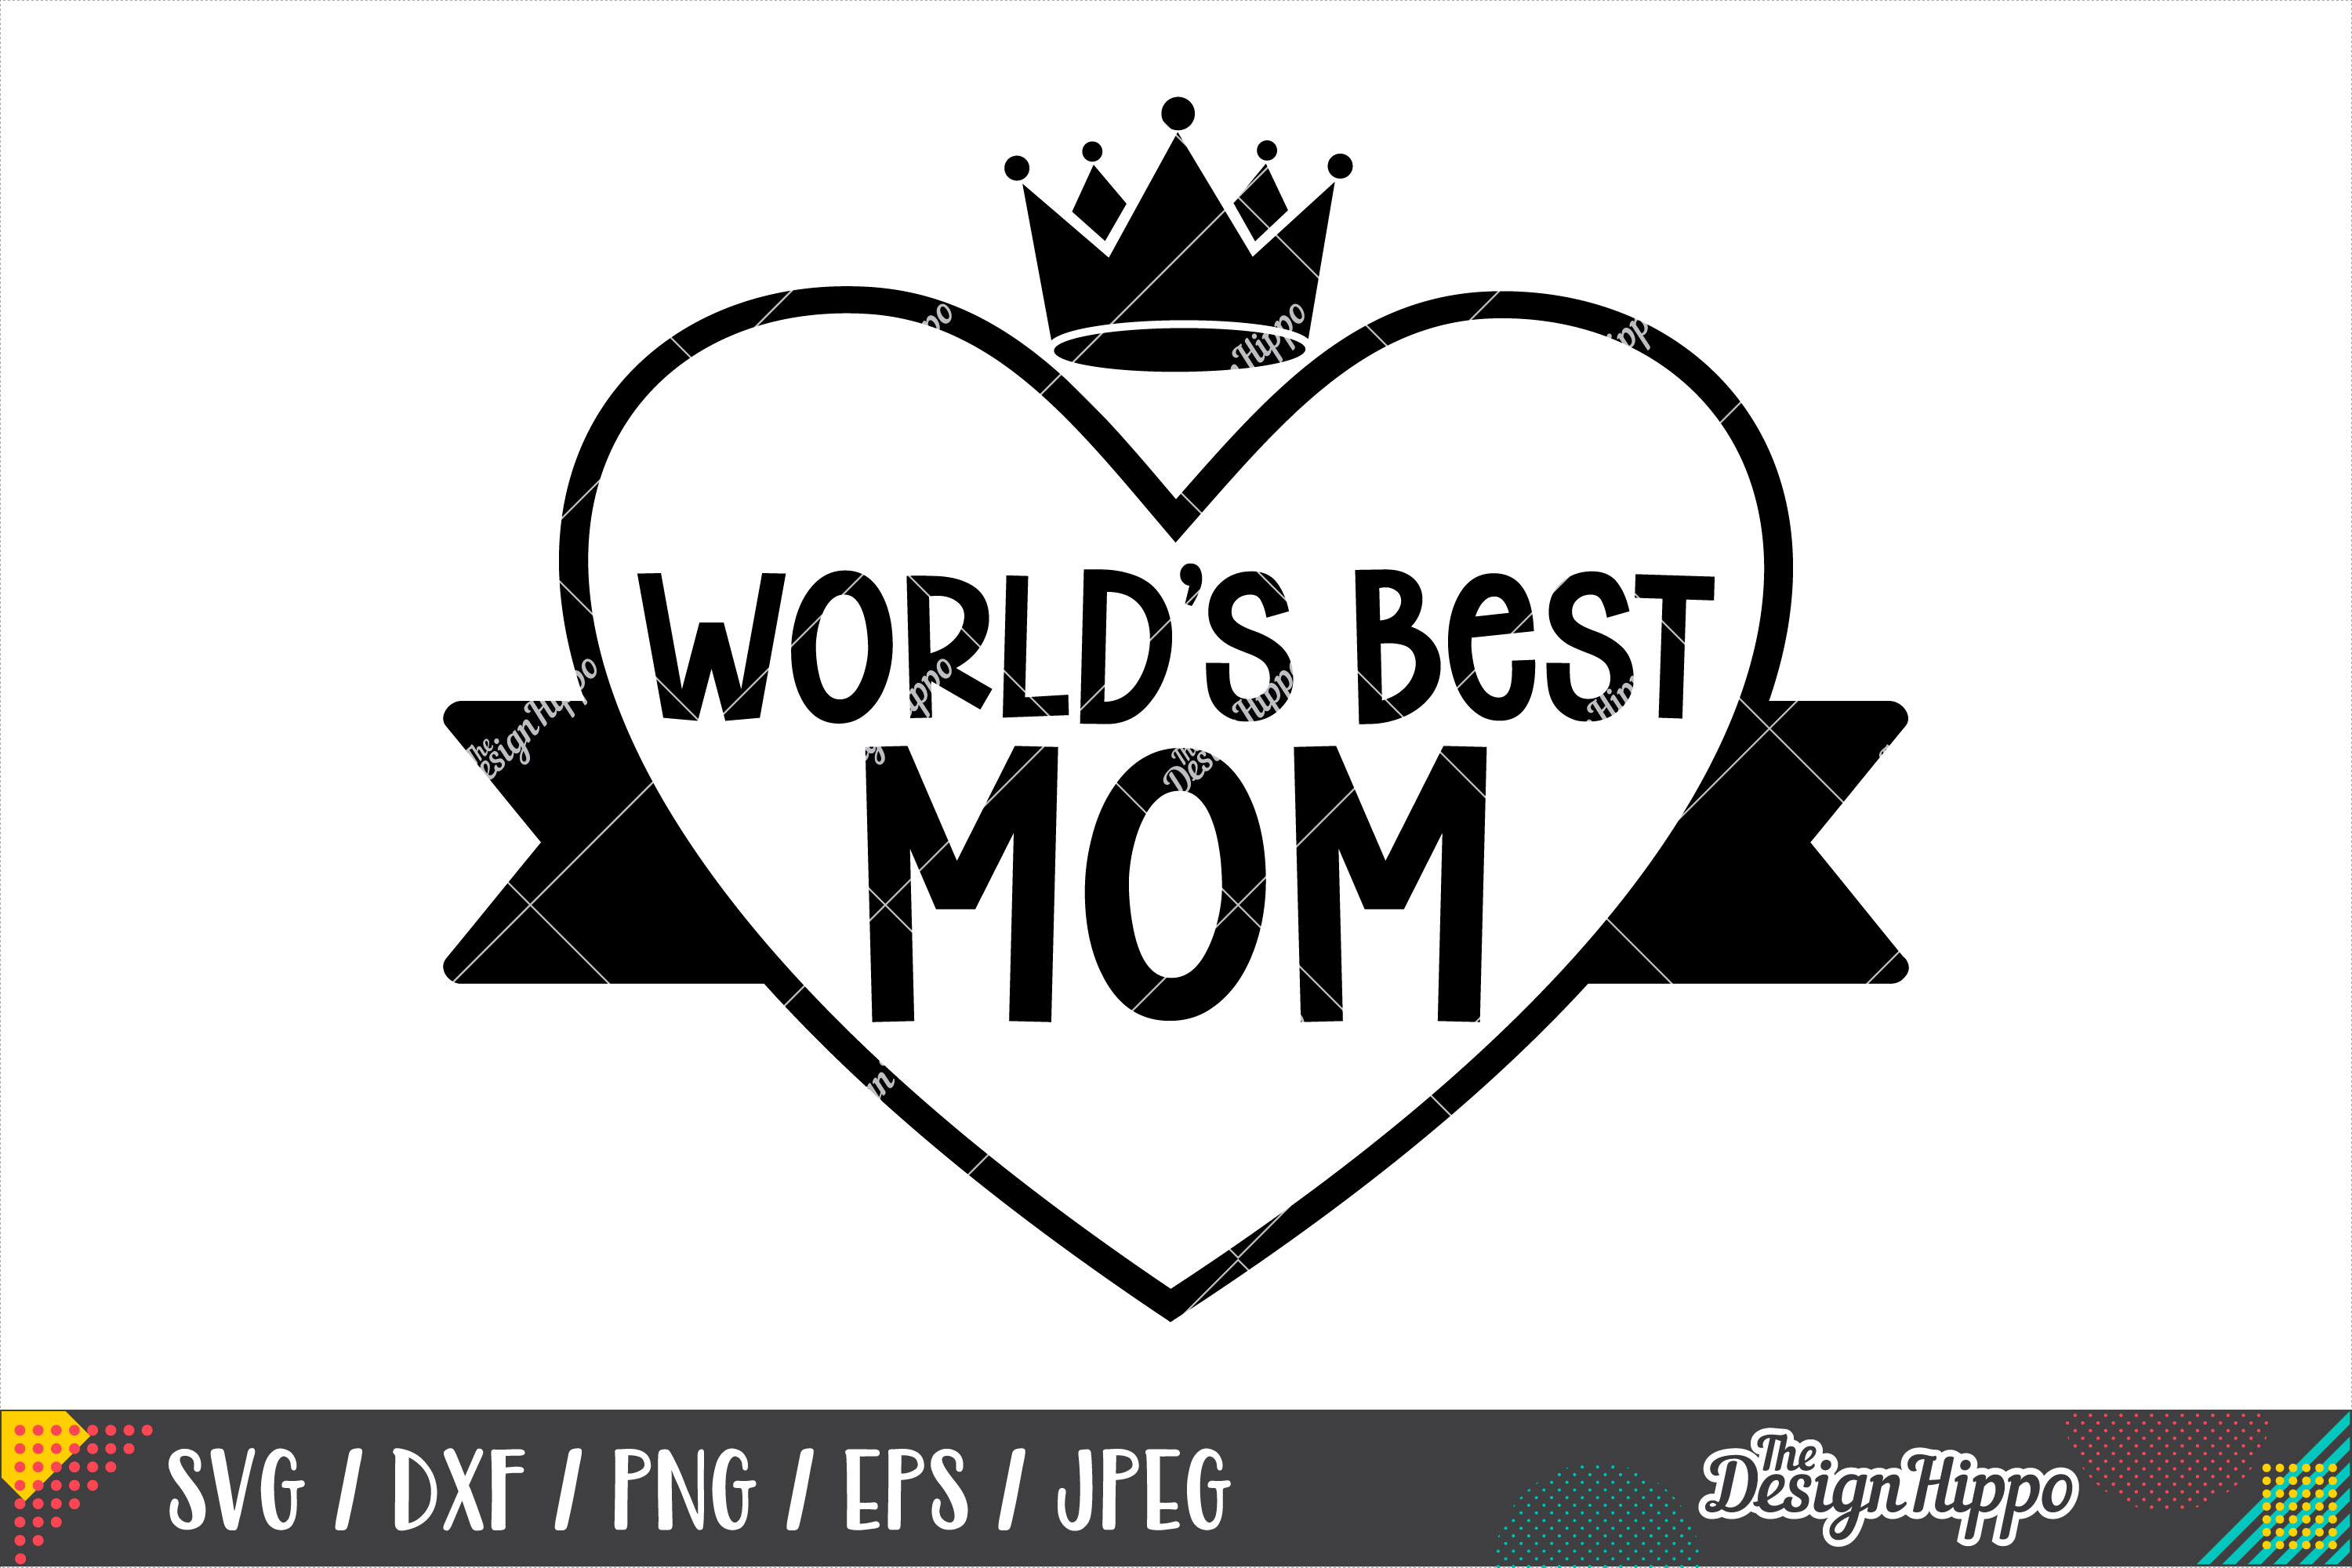 World's Best Mom SVG PNG DXF EPS Cricut Cut Files example image 1